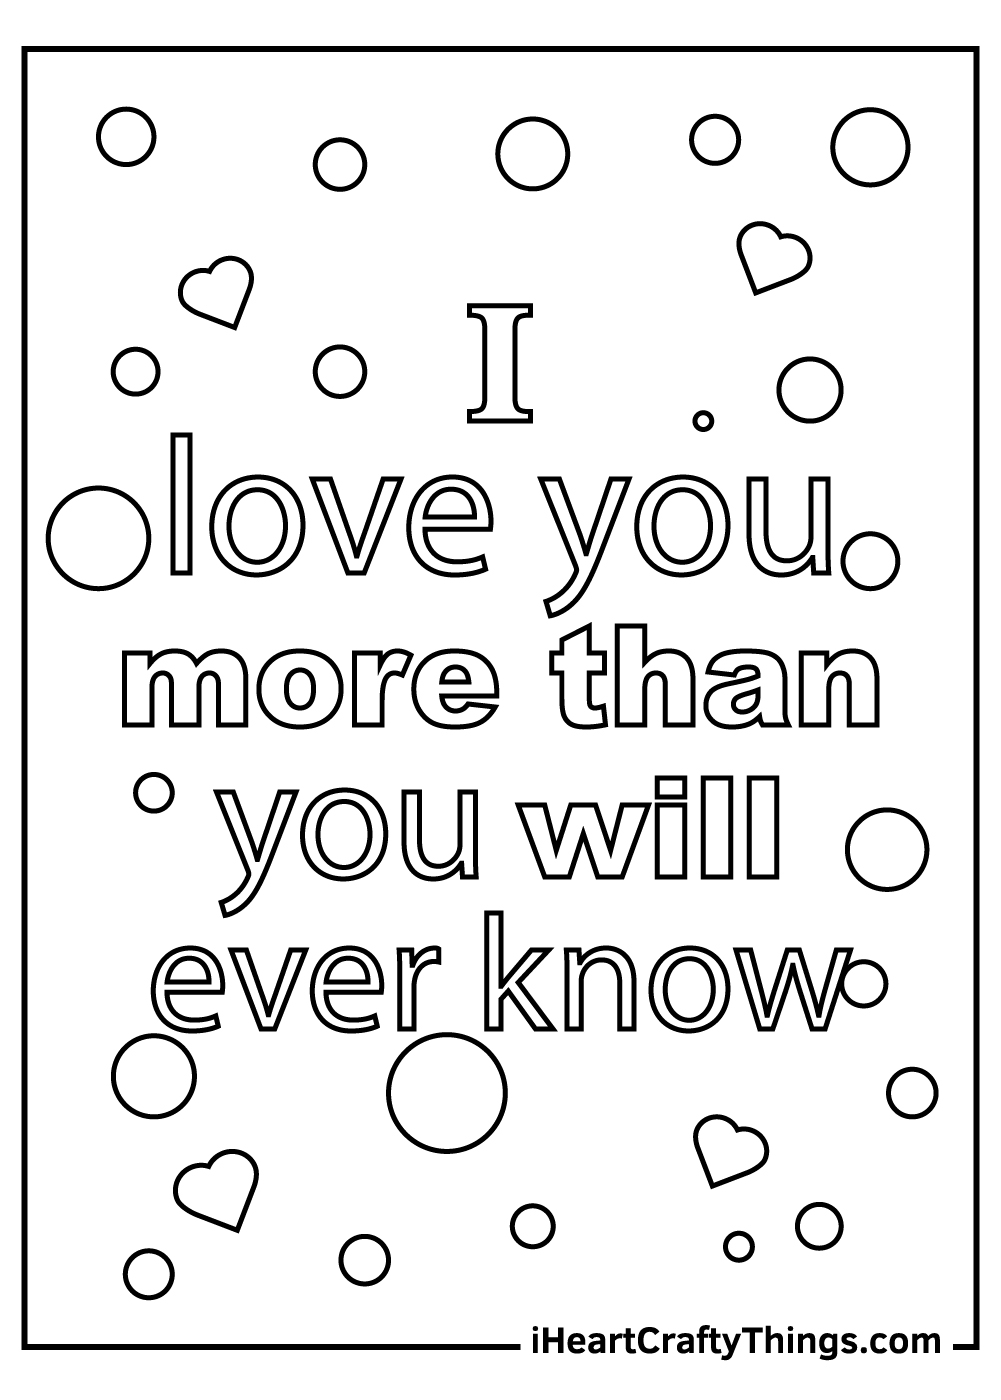 I love you more than you will ever know coloring pages